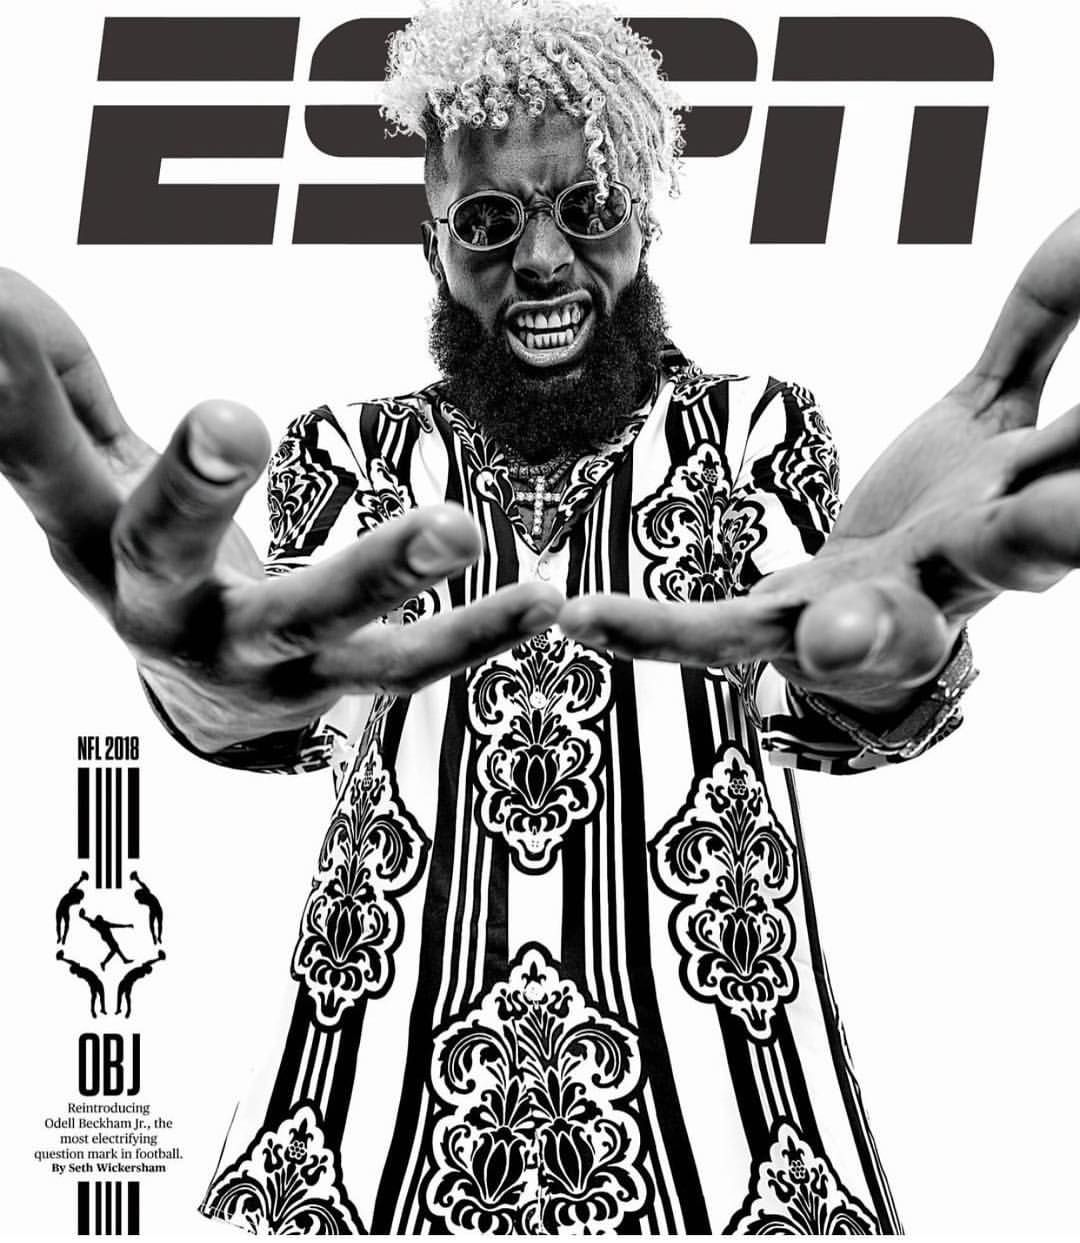 Obj On The Cover Of Espn Thank God He S Got Big Hands So He Can Hold All That Mula Nola Ya Just Made History O Espn Magazine Odell Beckham Jr Beckham